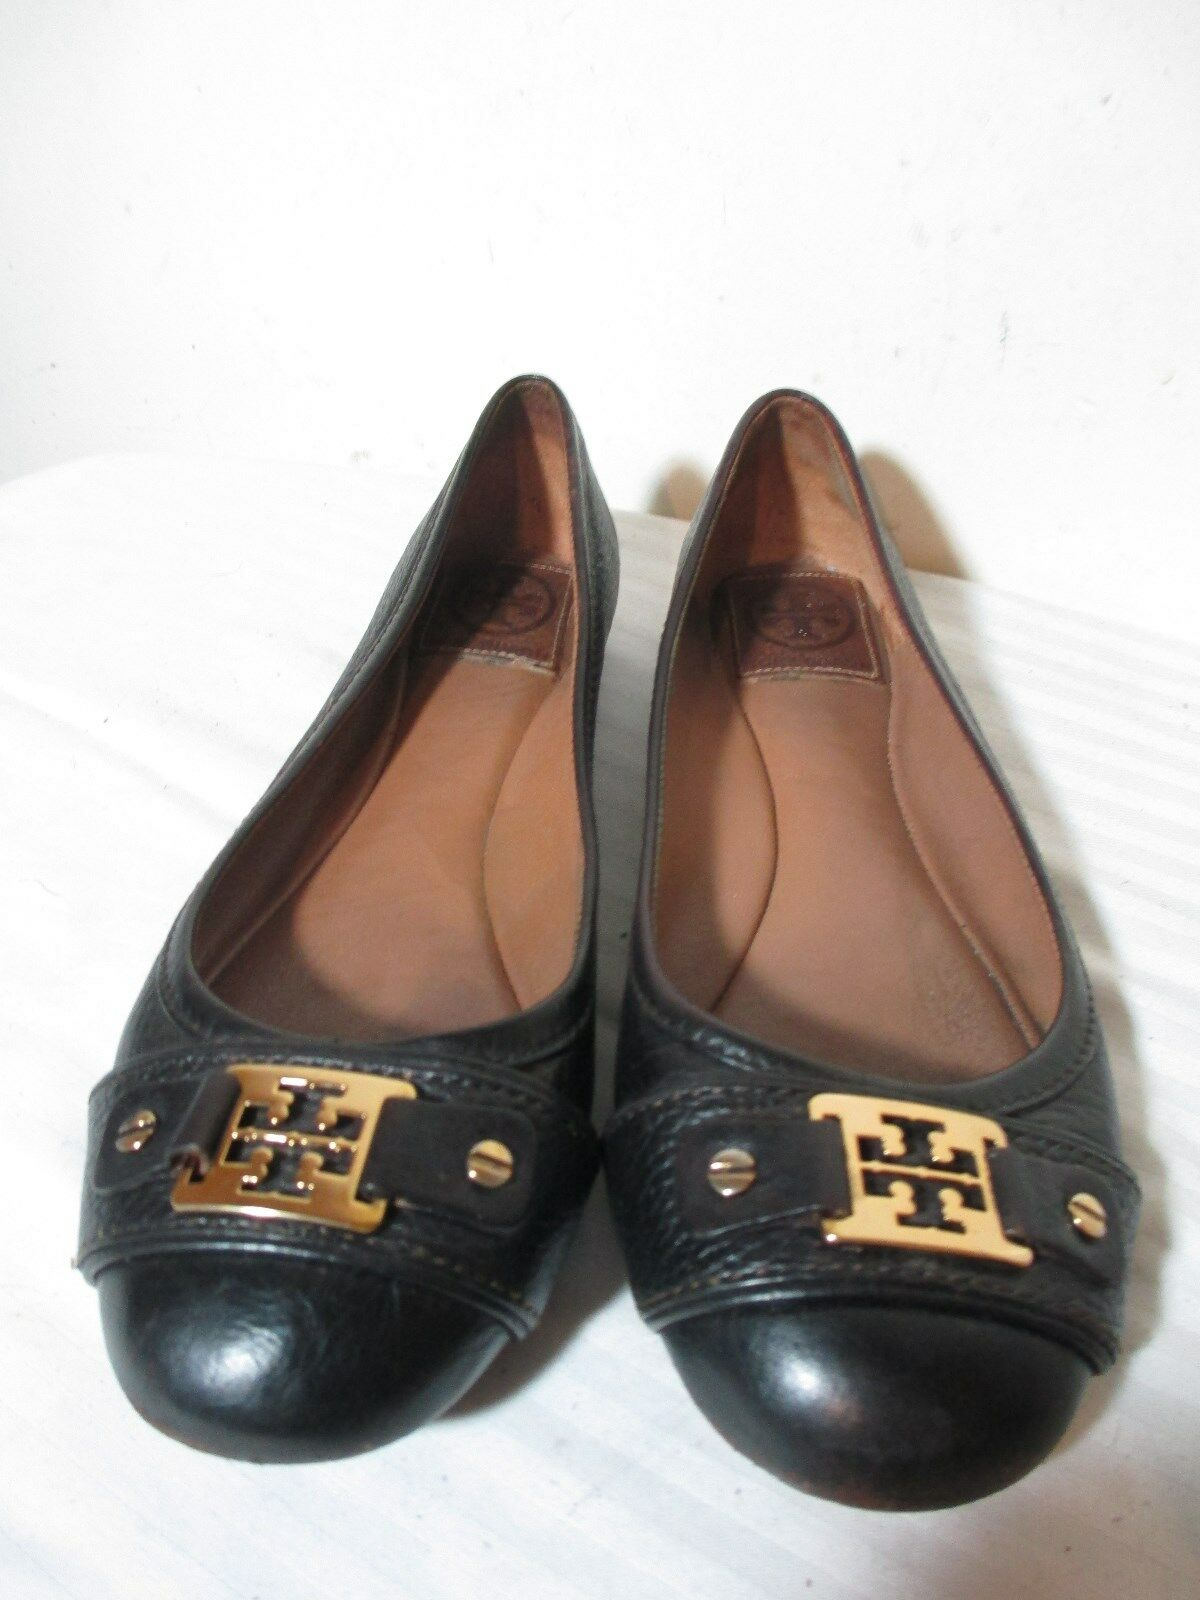 TORY BURCH WOMEN'S DARK BROWN LEATHER FLATS SZ 7M MADE IN BRAZIL